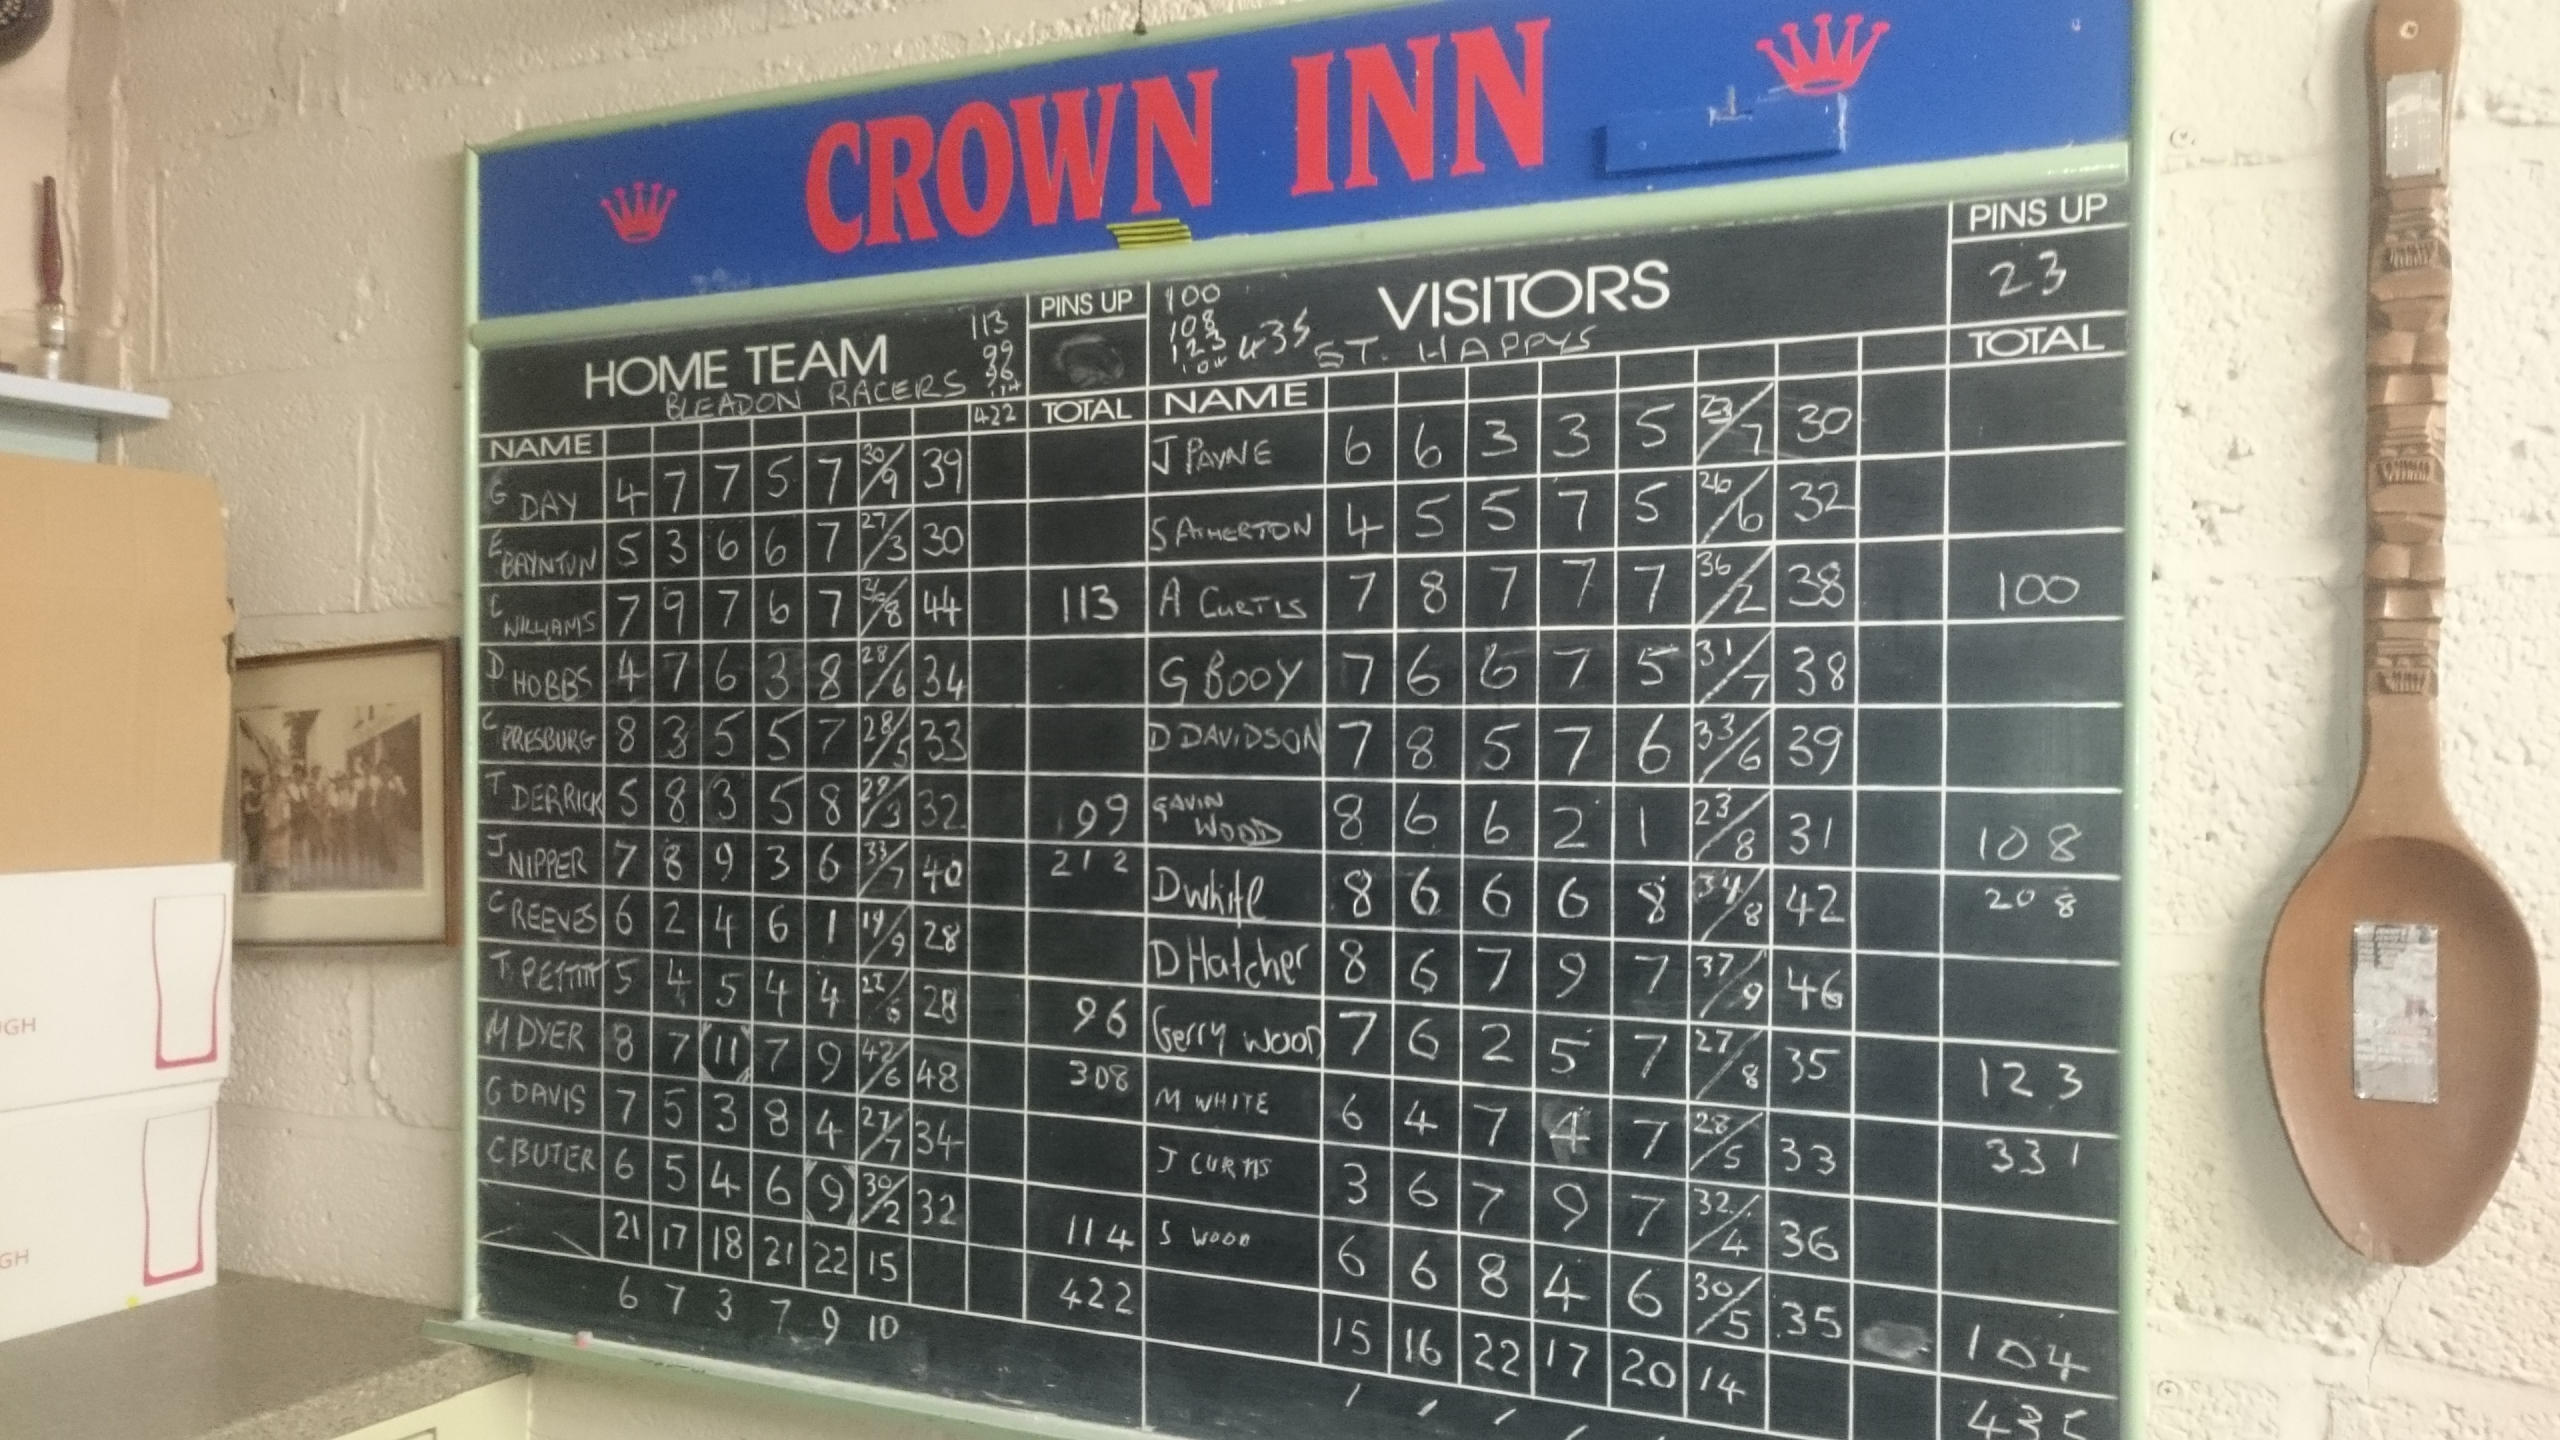 Racers v St. Happys - Steve James Cup, Crown Inn Axbridge